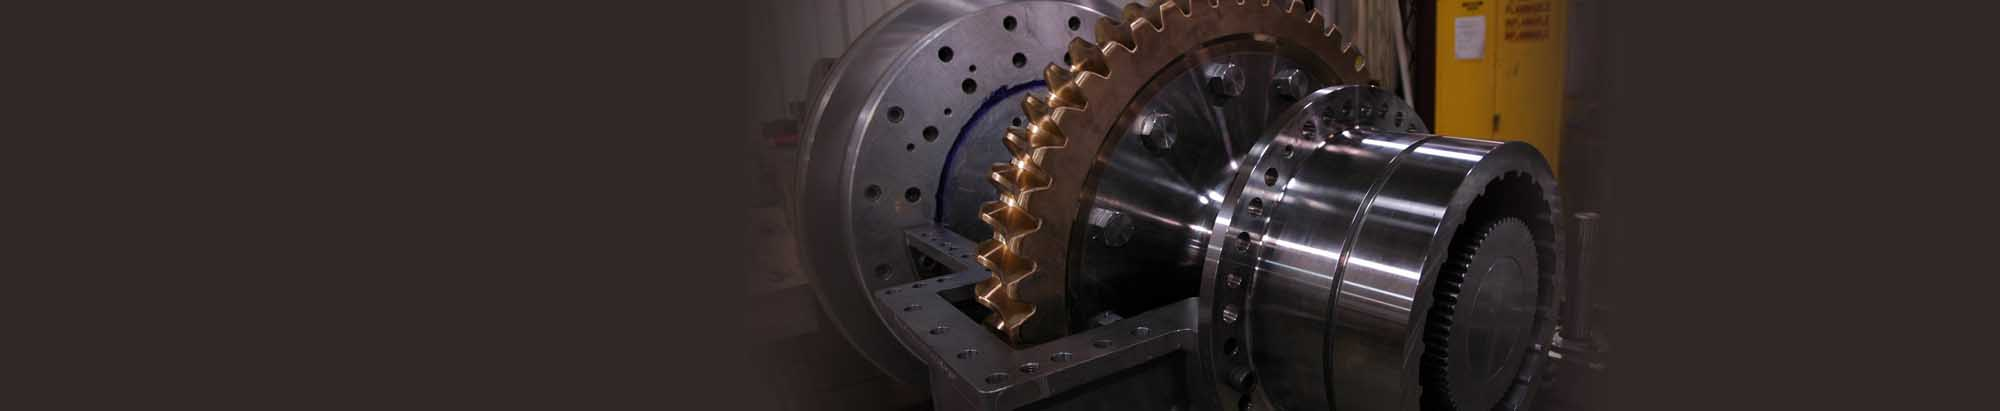 Image of a gear